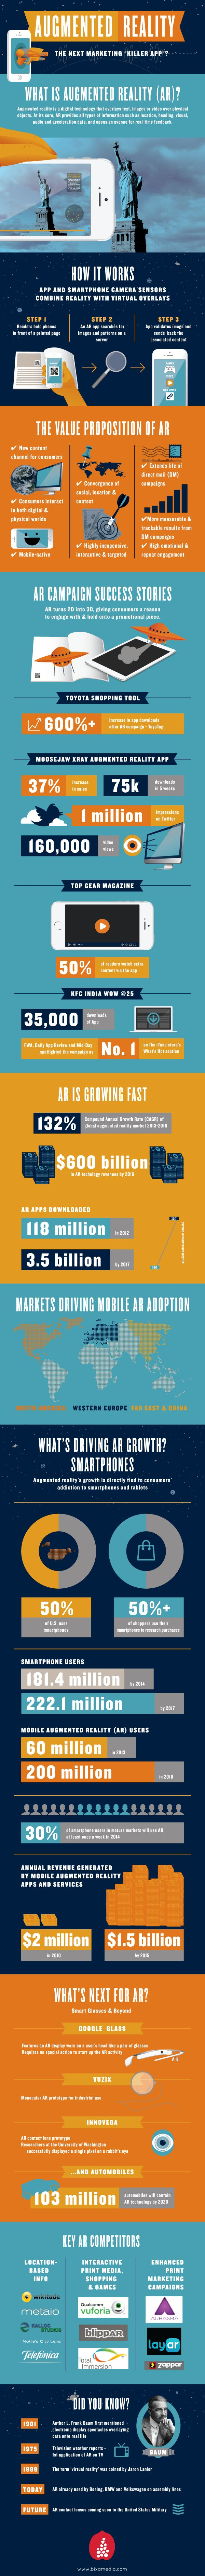 "Augmented Reality - The Next Marketing ""Killer App""? #Infographic #infografía"